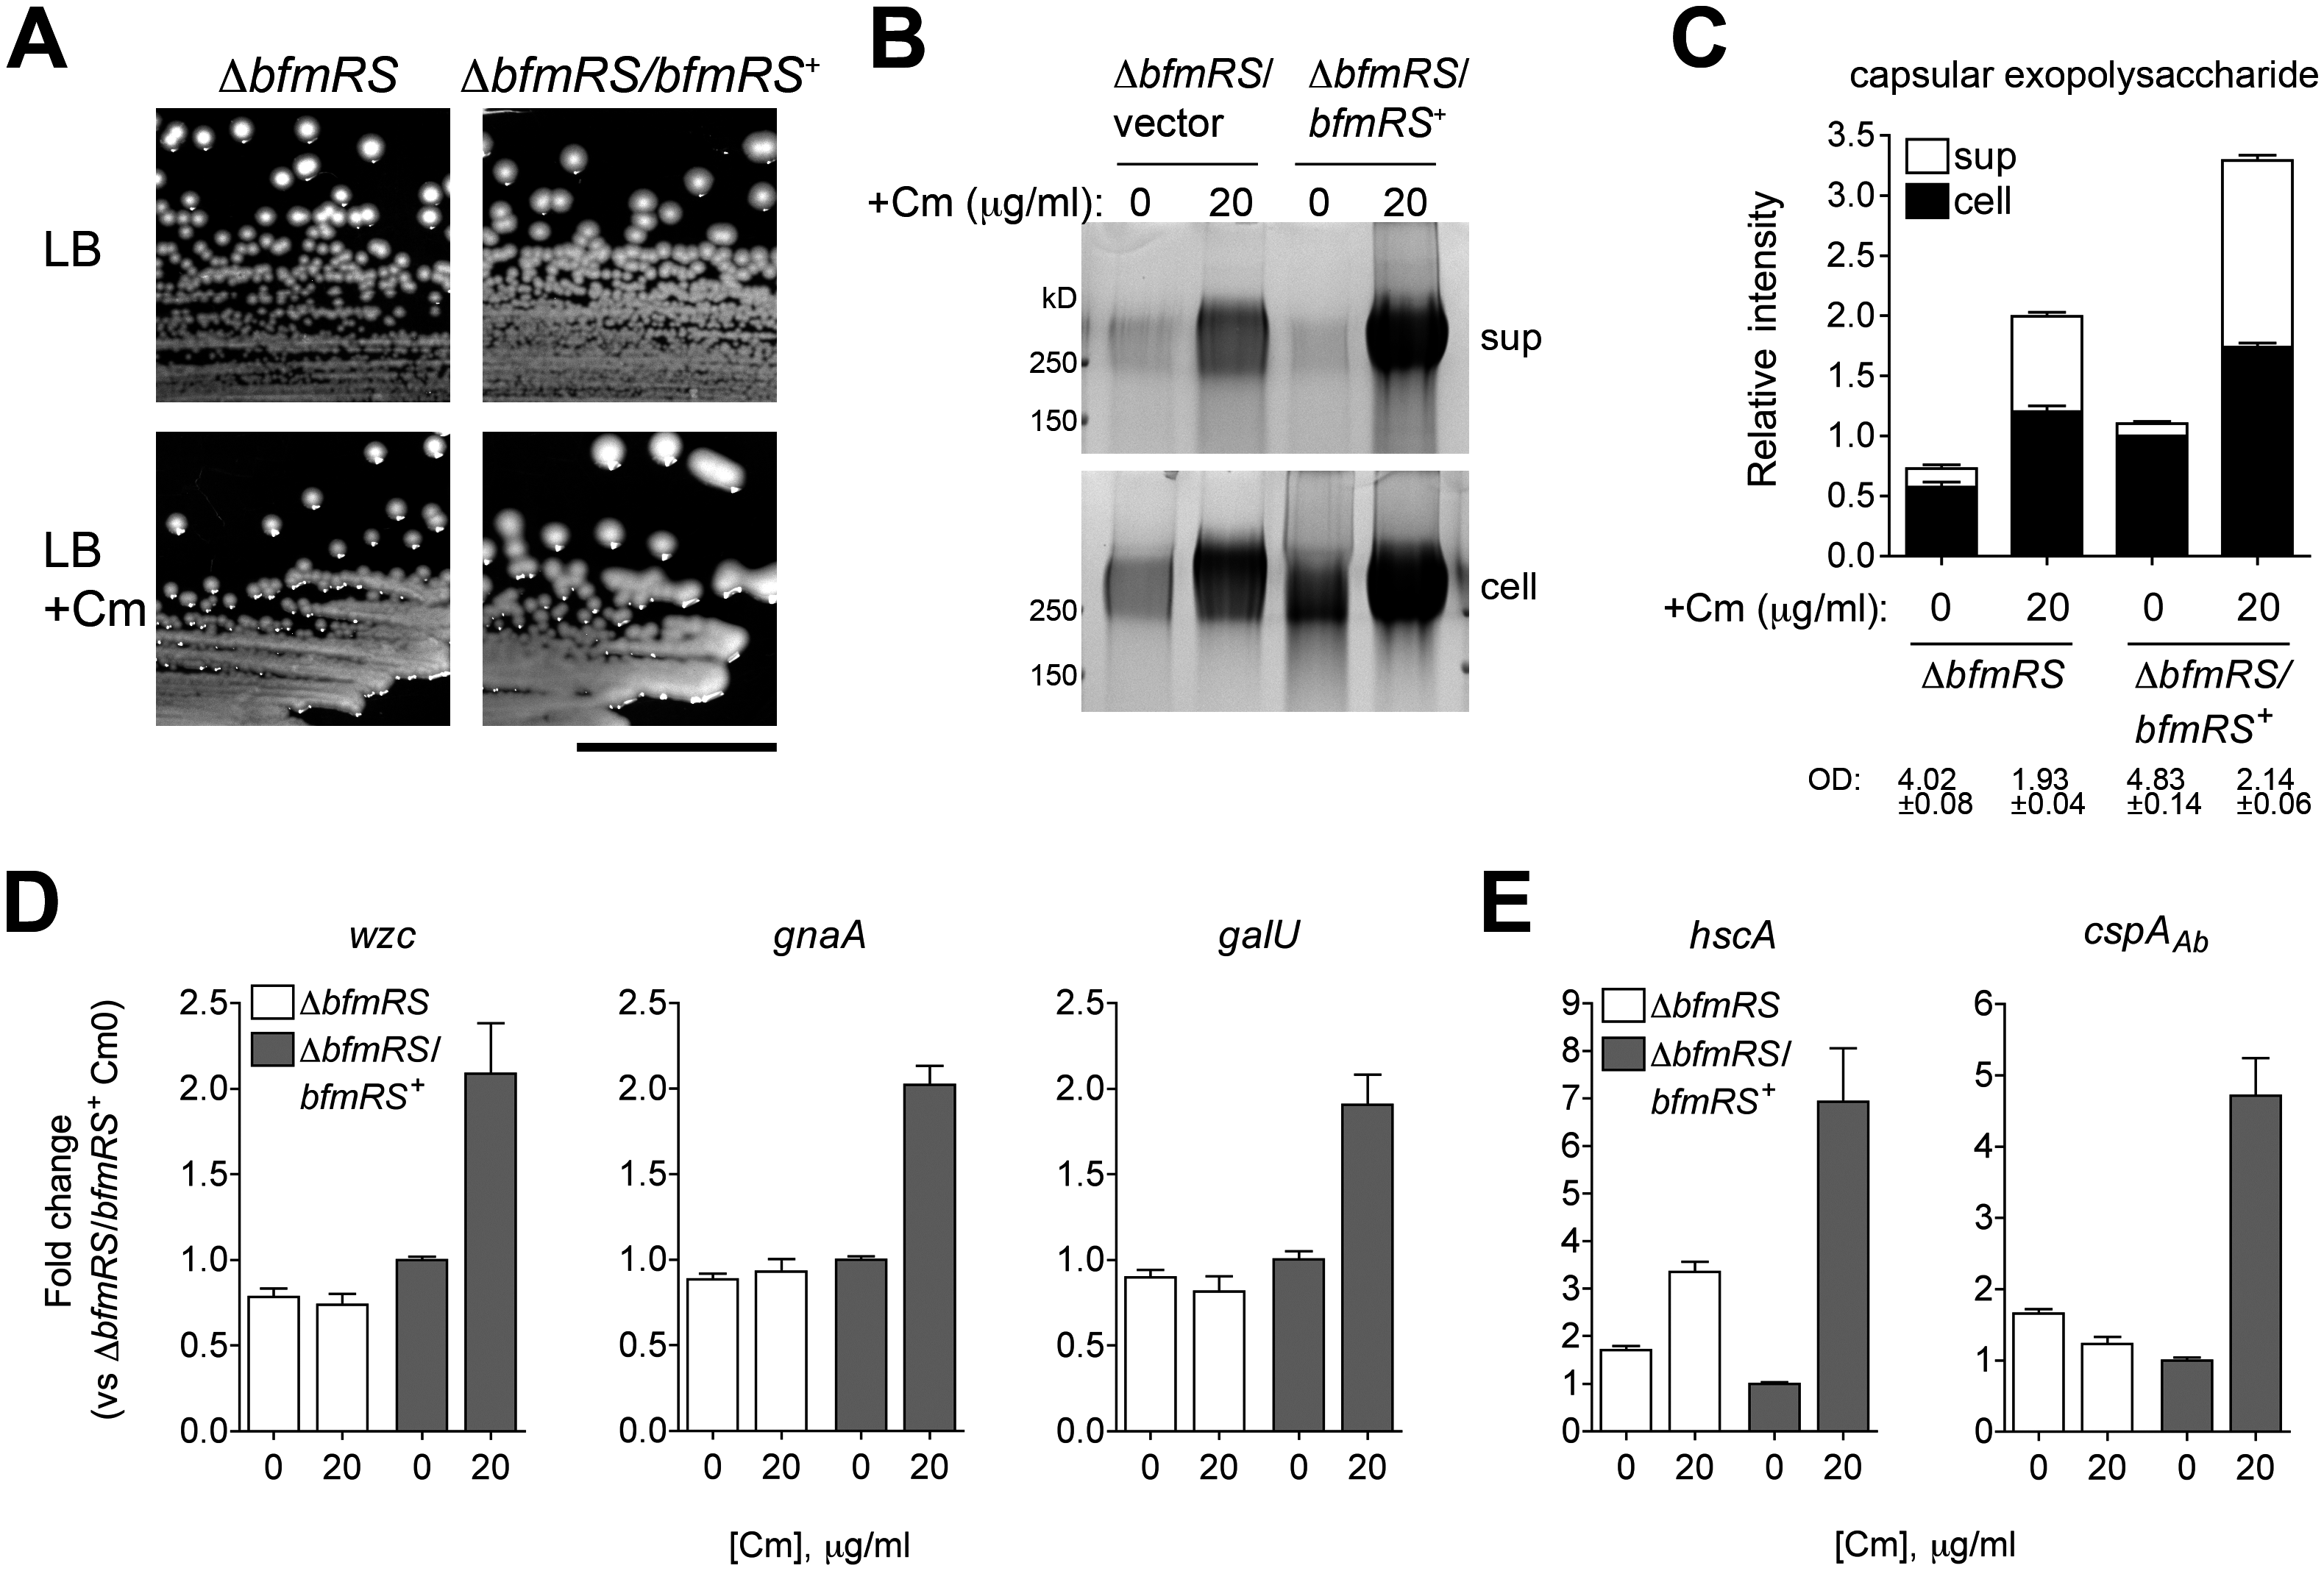 Transcriptional induction of K locus and cold shock gene expression by Cm involves BfmRS.